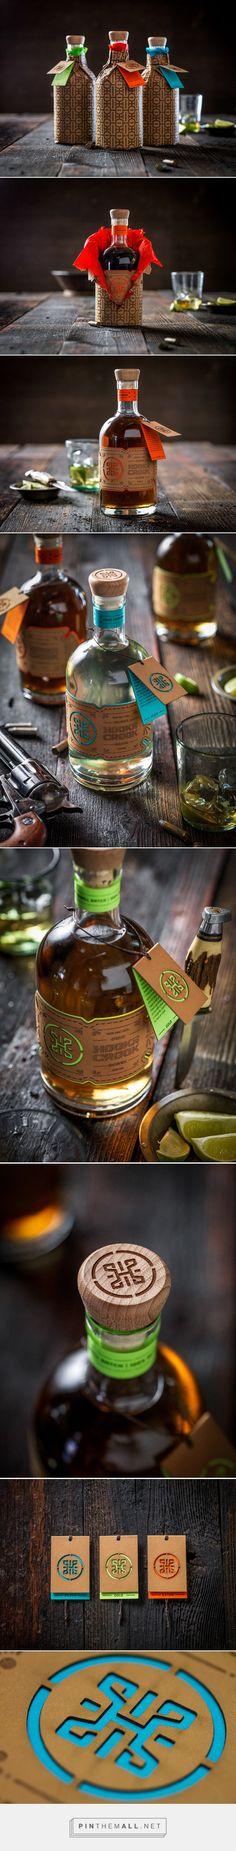 Hook Or Crook Tequila designed Josh Jevons. Pin curated by #SFields99 #packaging #design #branding